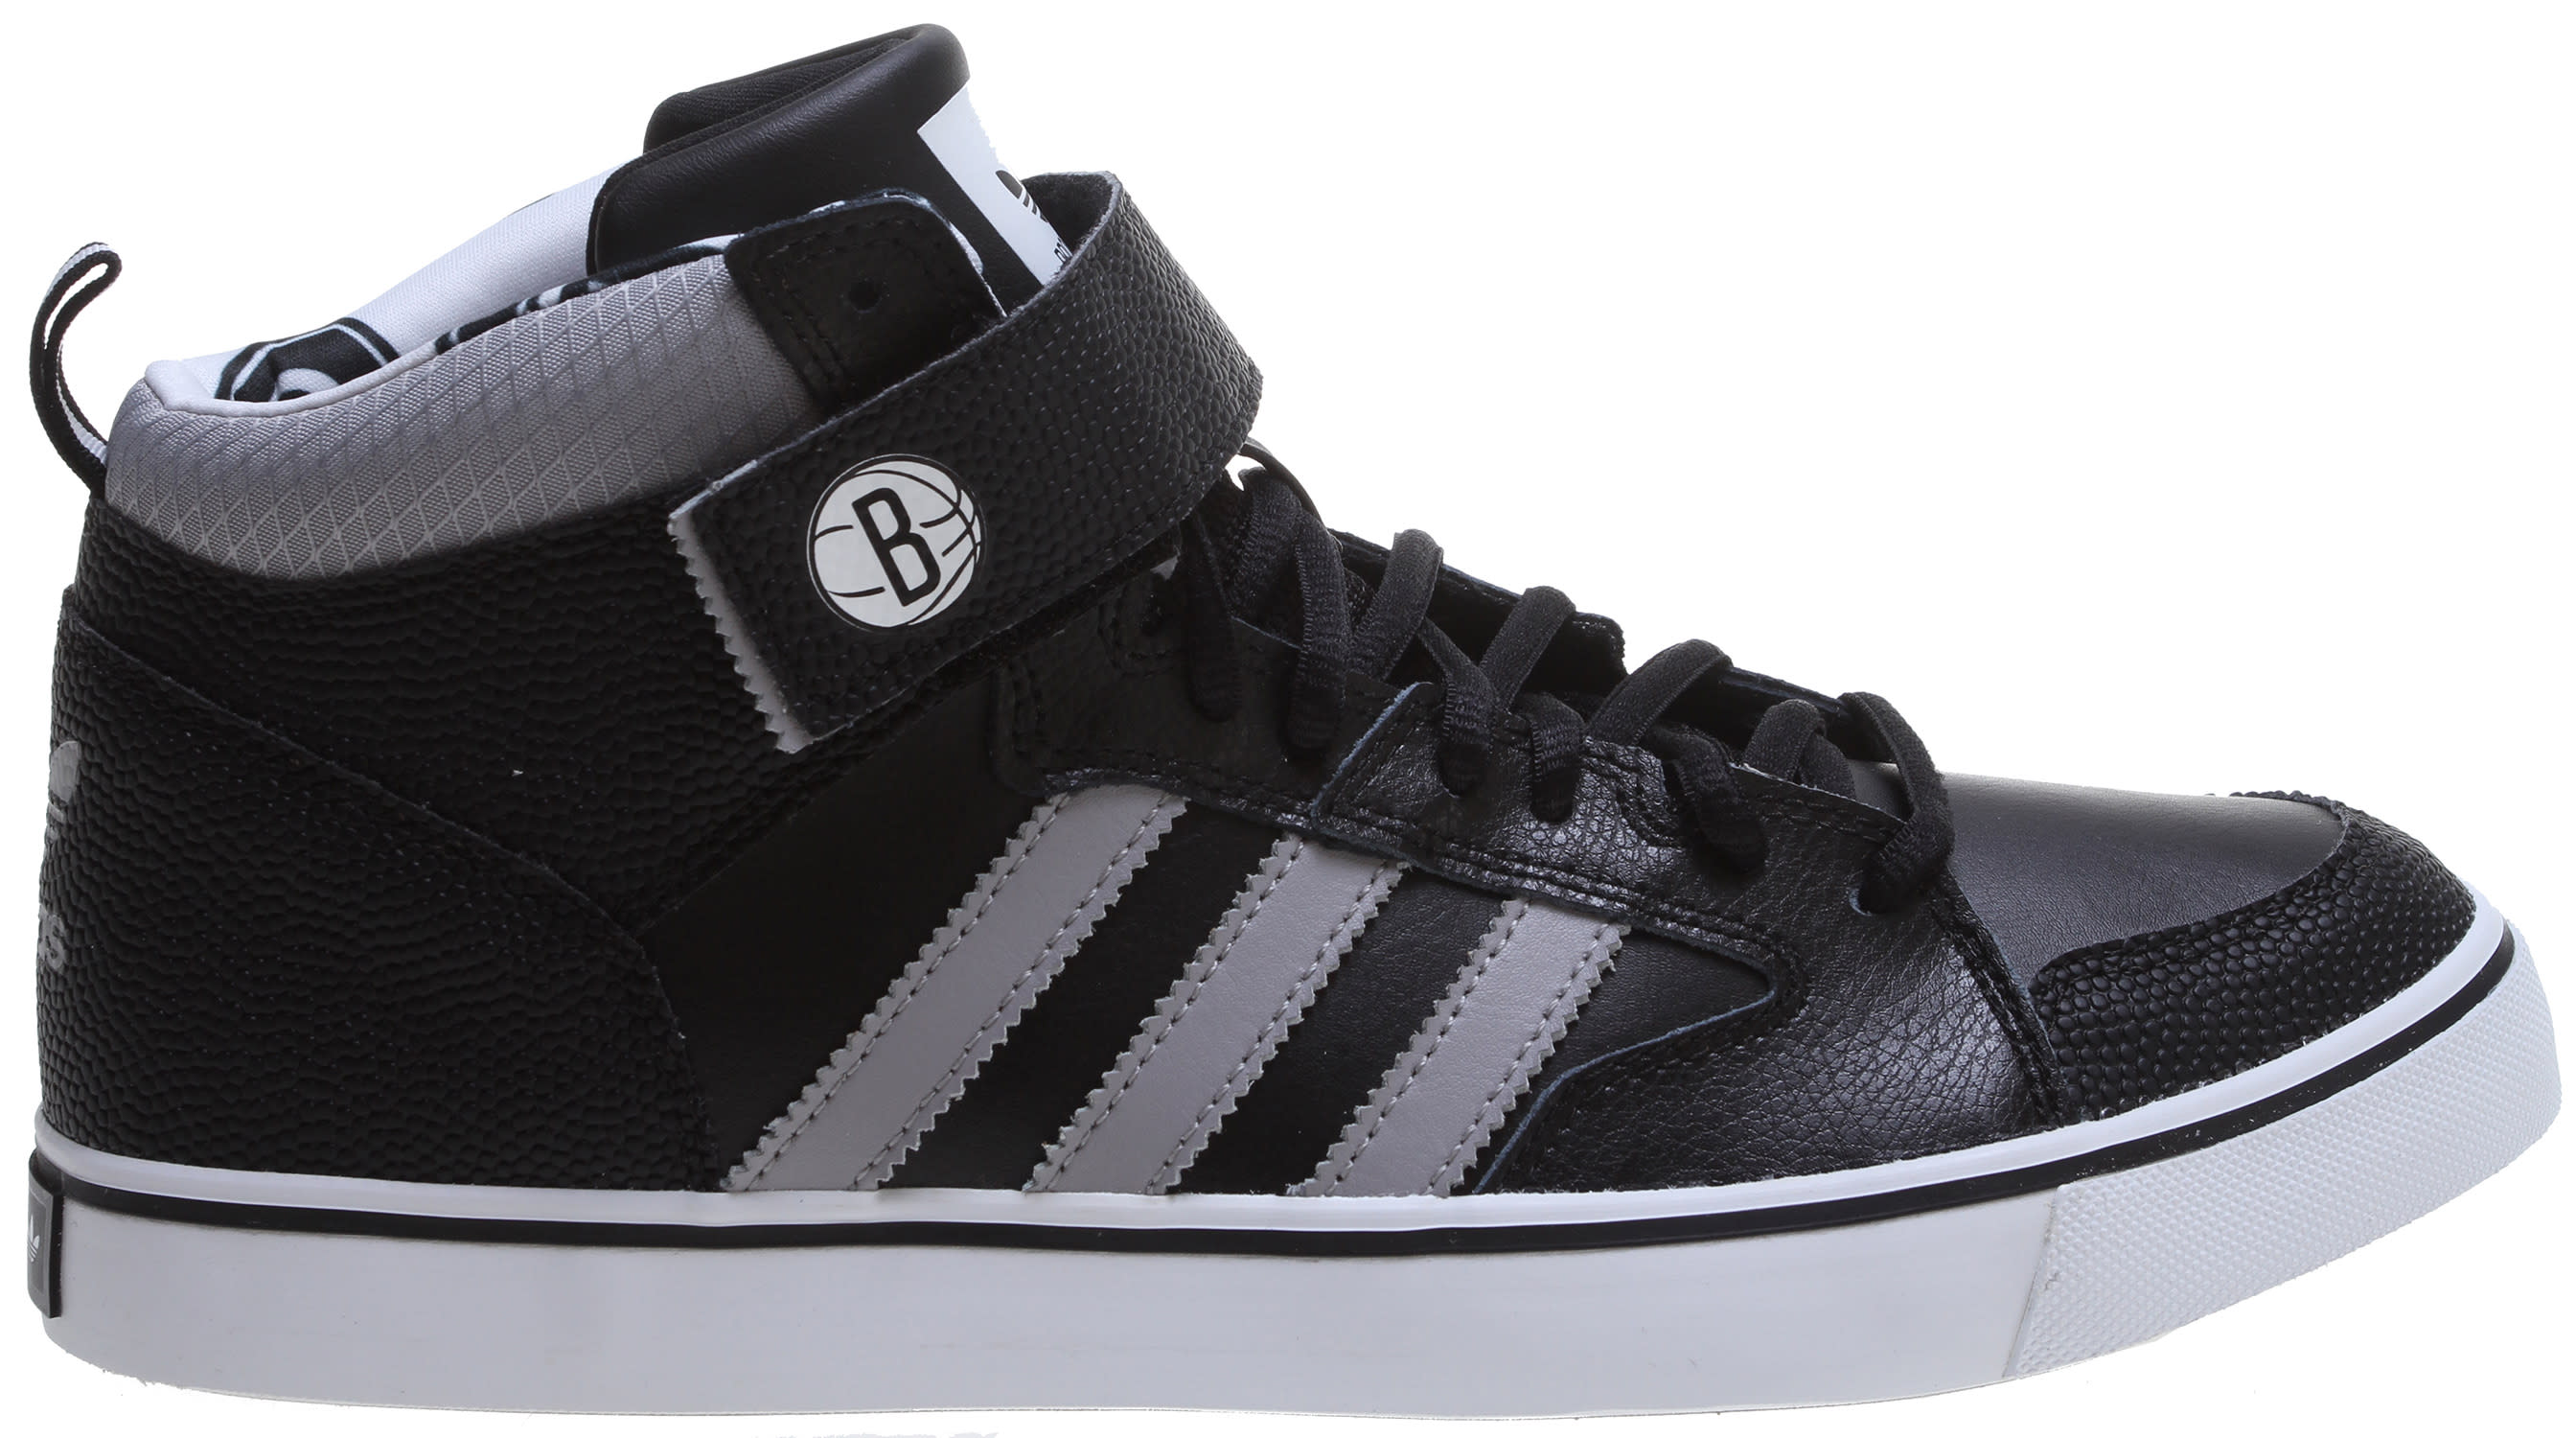 On Sale Adidas Varial II Mid - NBA Skate Shoes up to 50% off